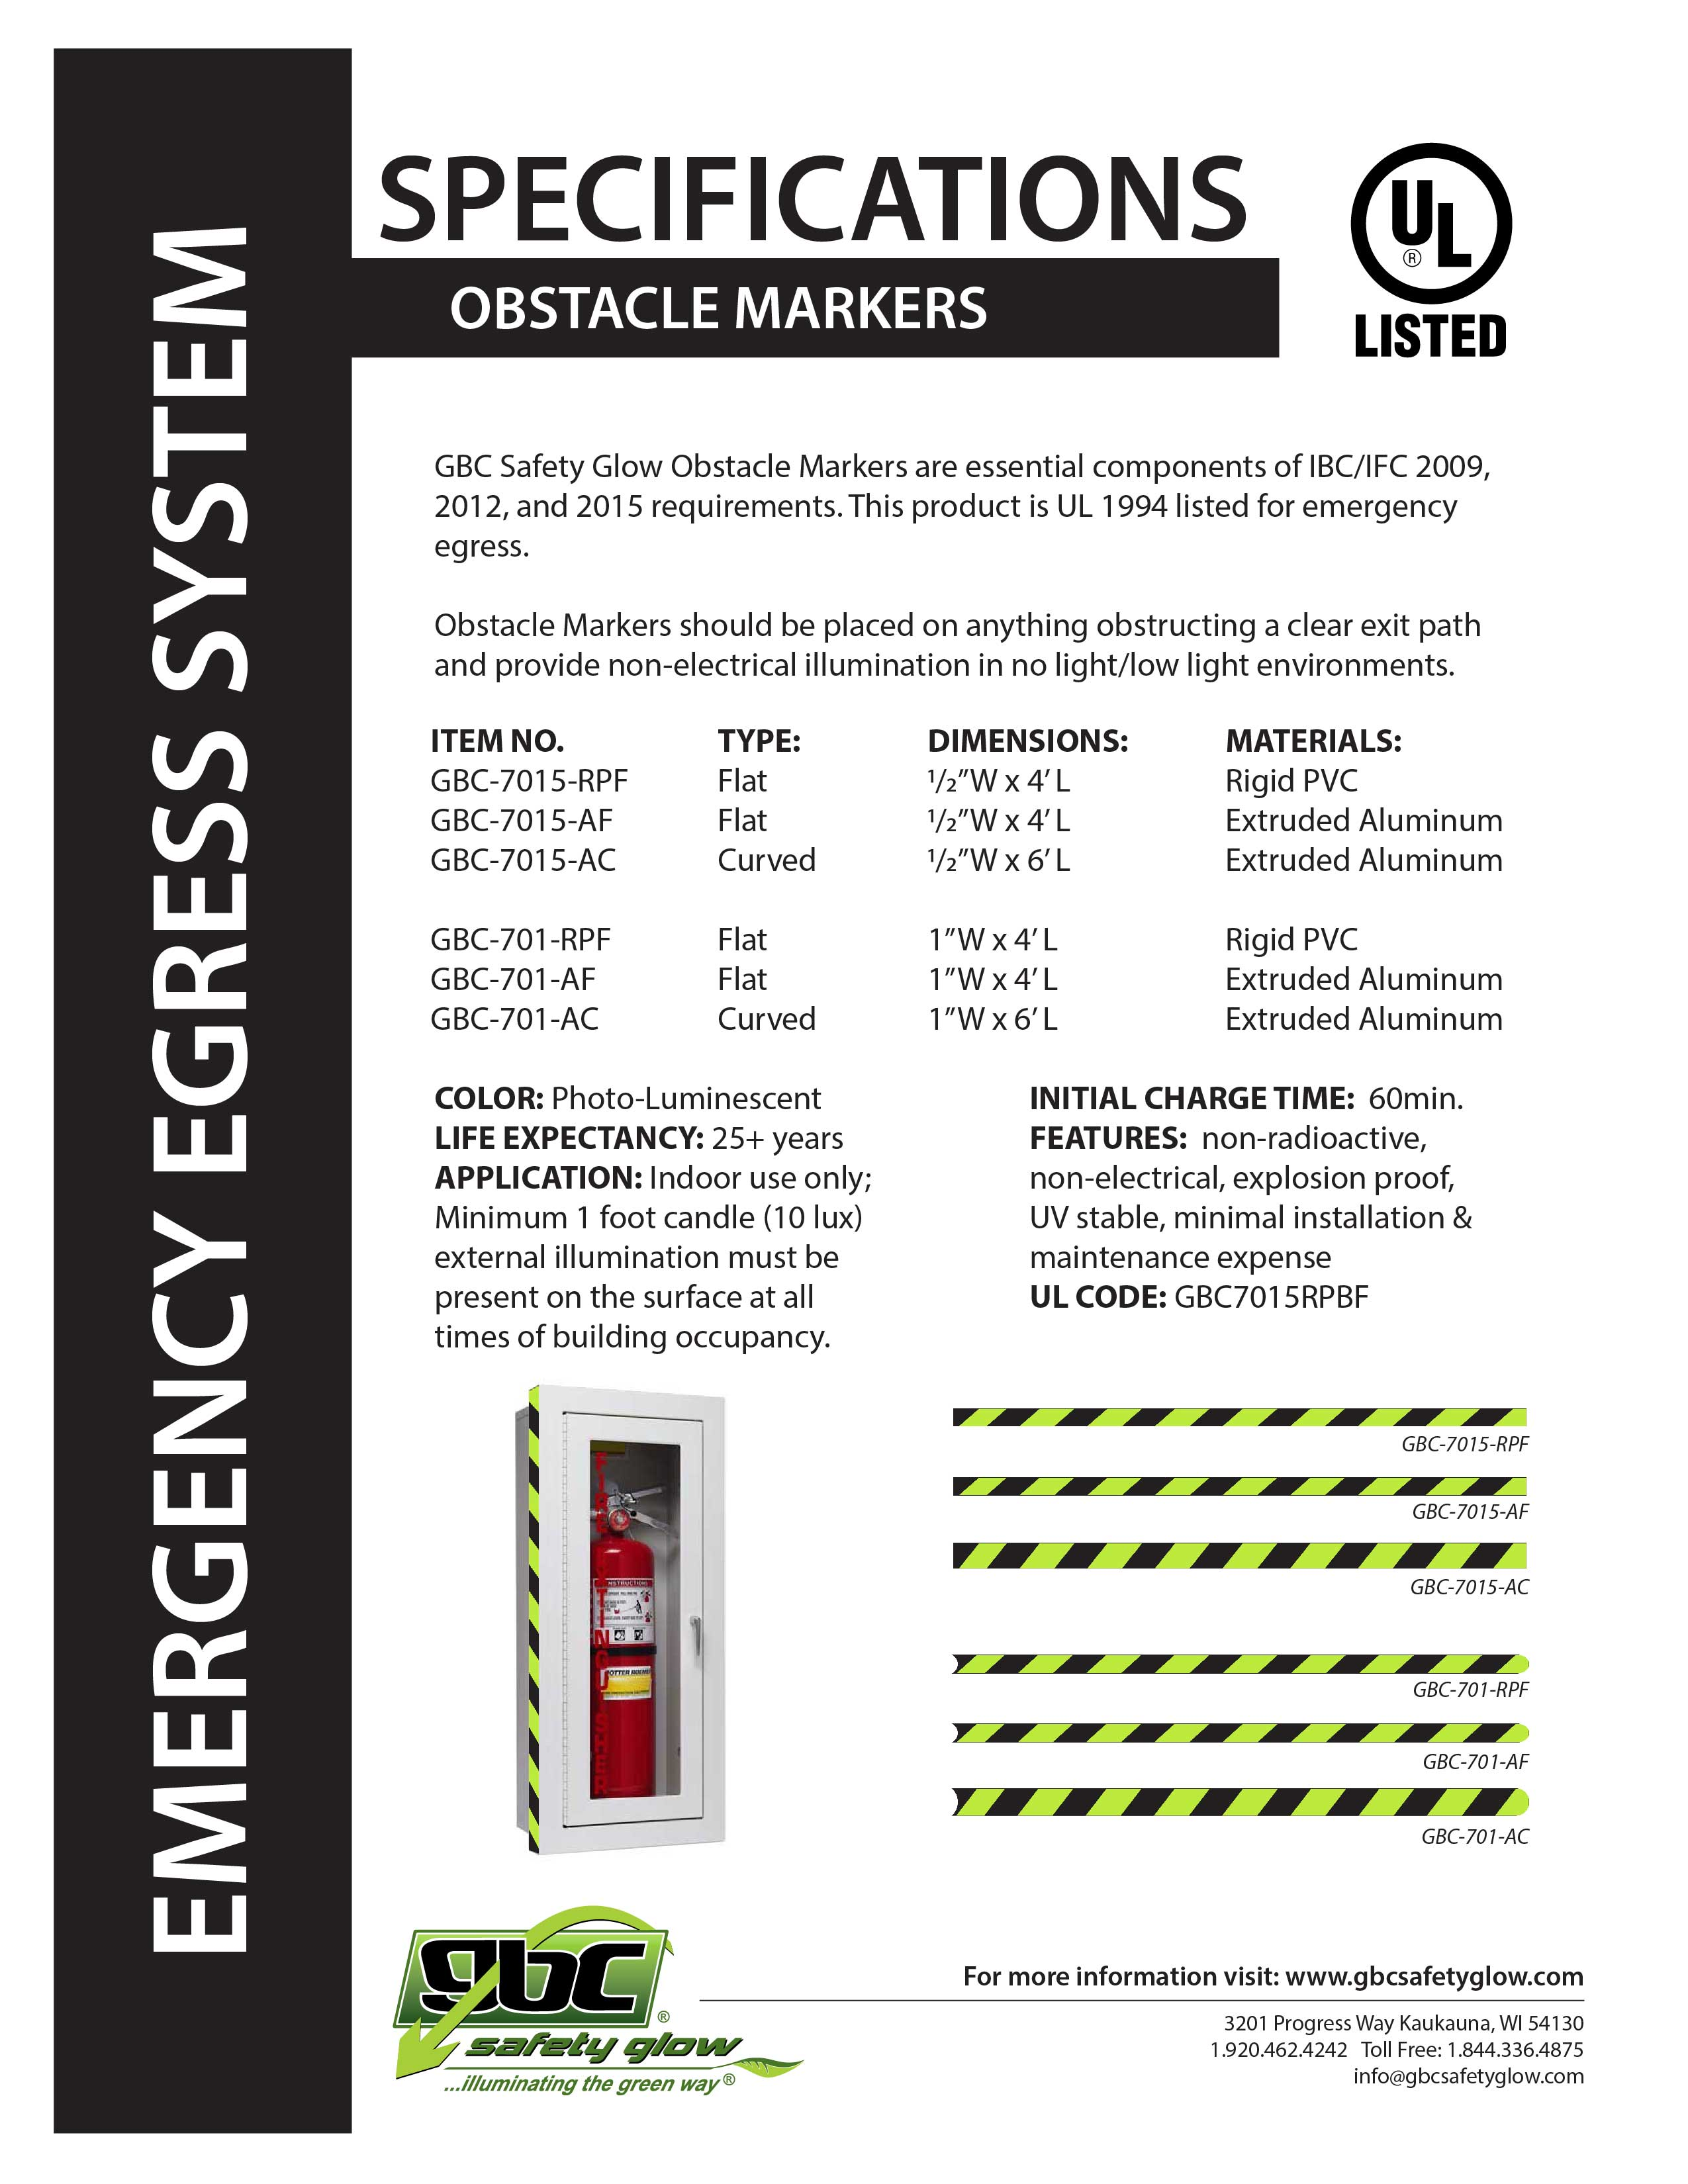 Obstacle Markers